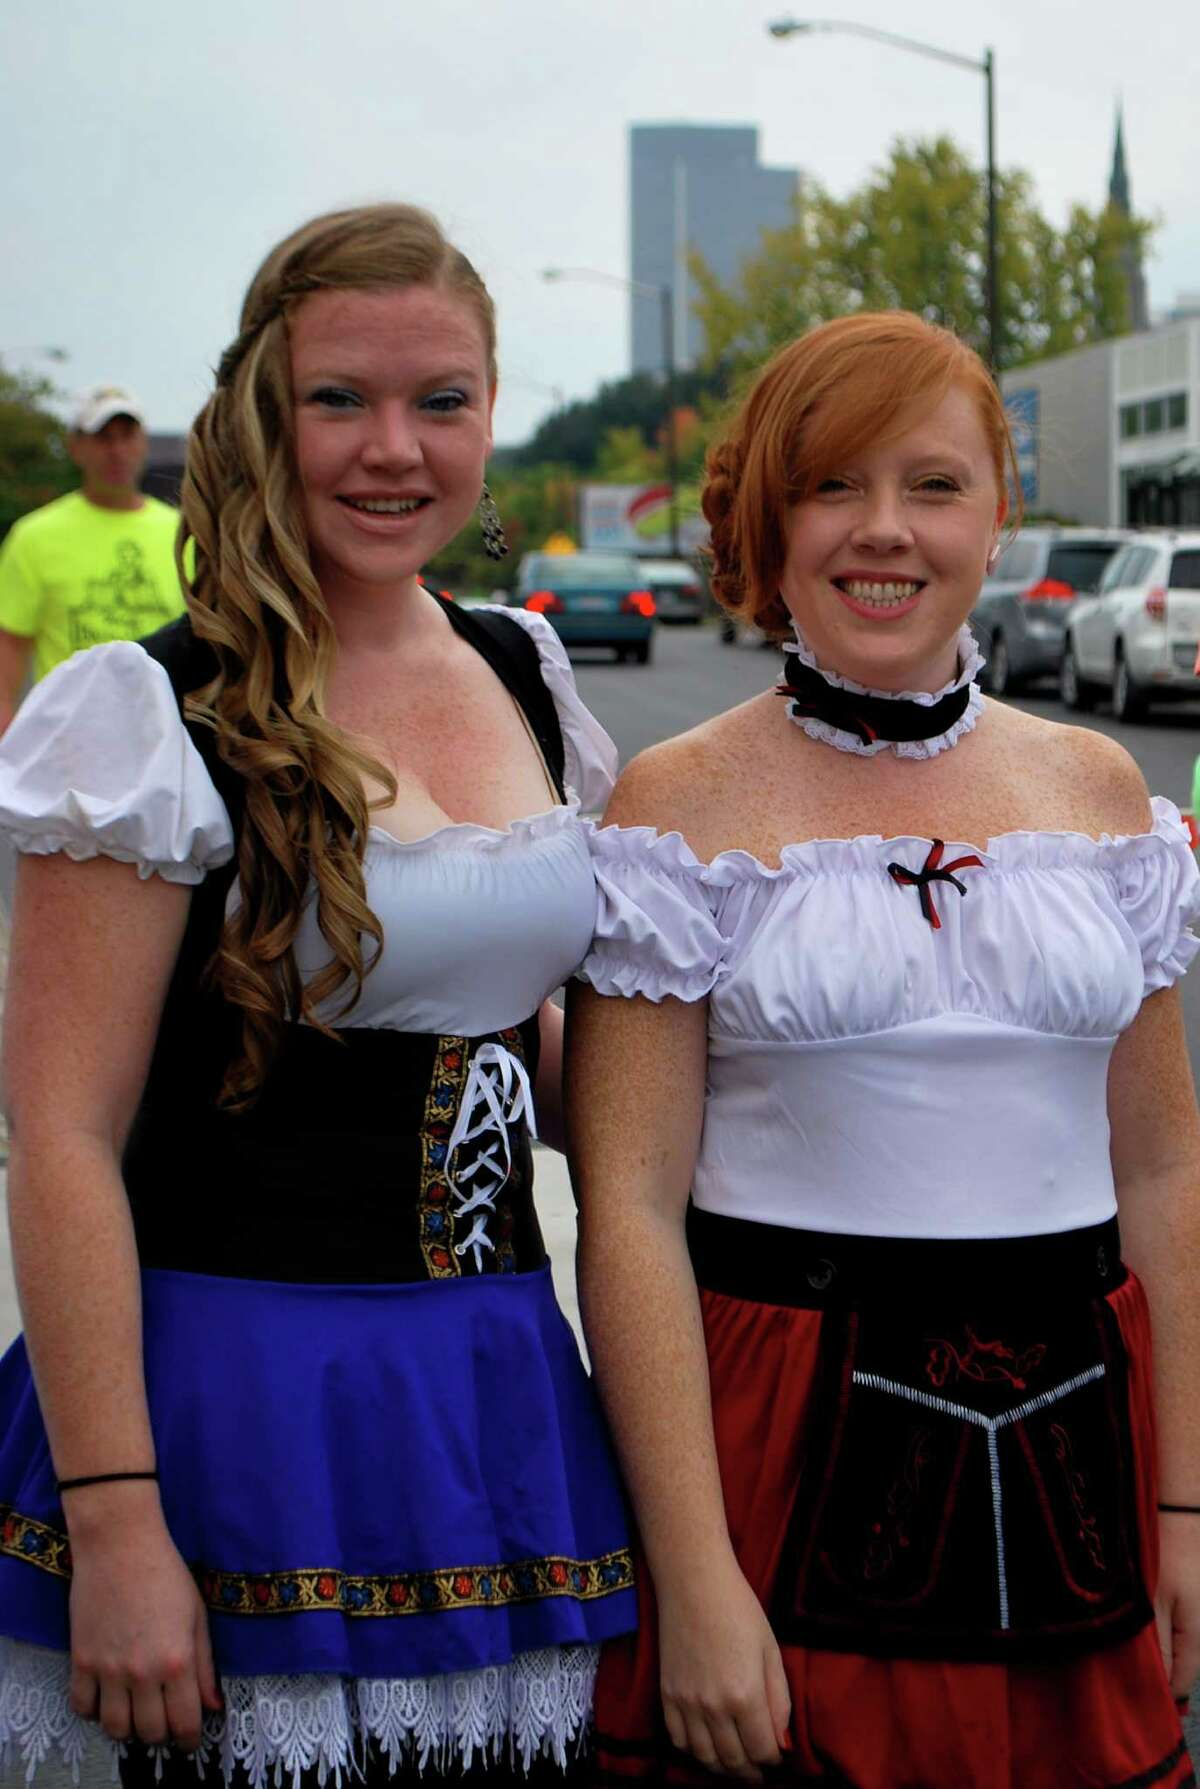 Were you Seen celebrating Oktoberfest at Wolff's Biergarten in Albany on Saturday, Oct. 6, 2012?